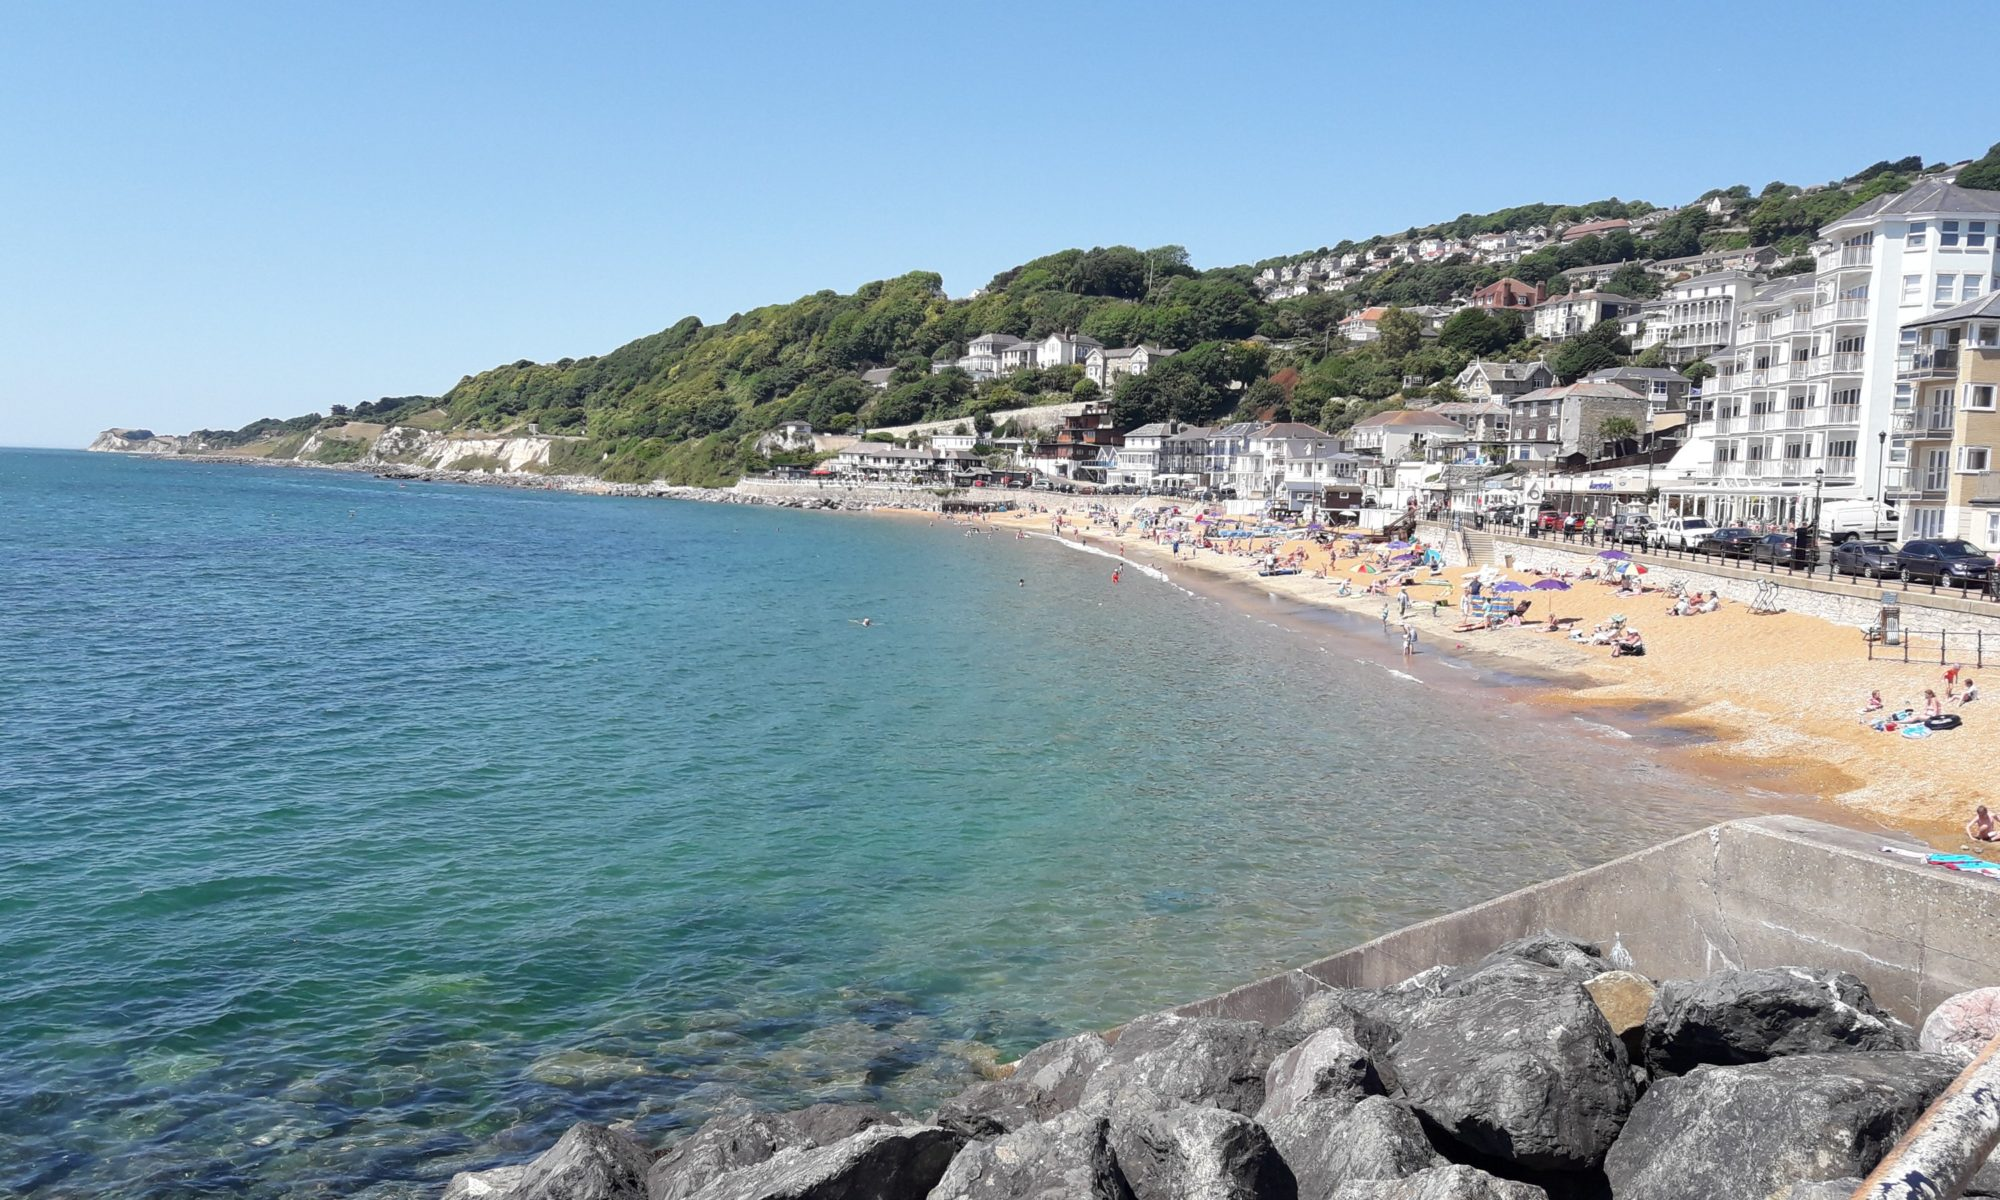 Seafront at Ventnor